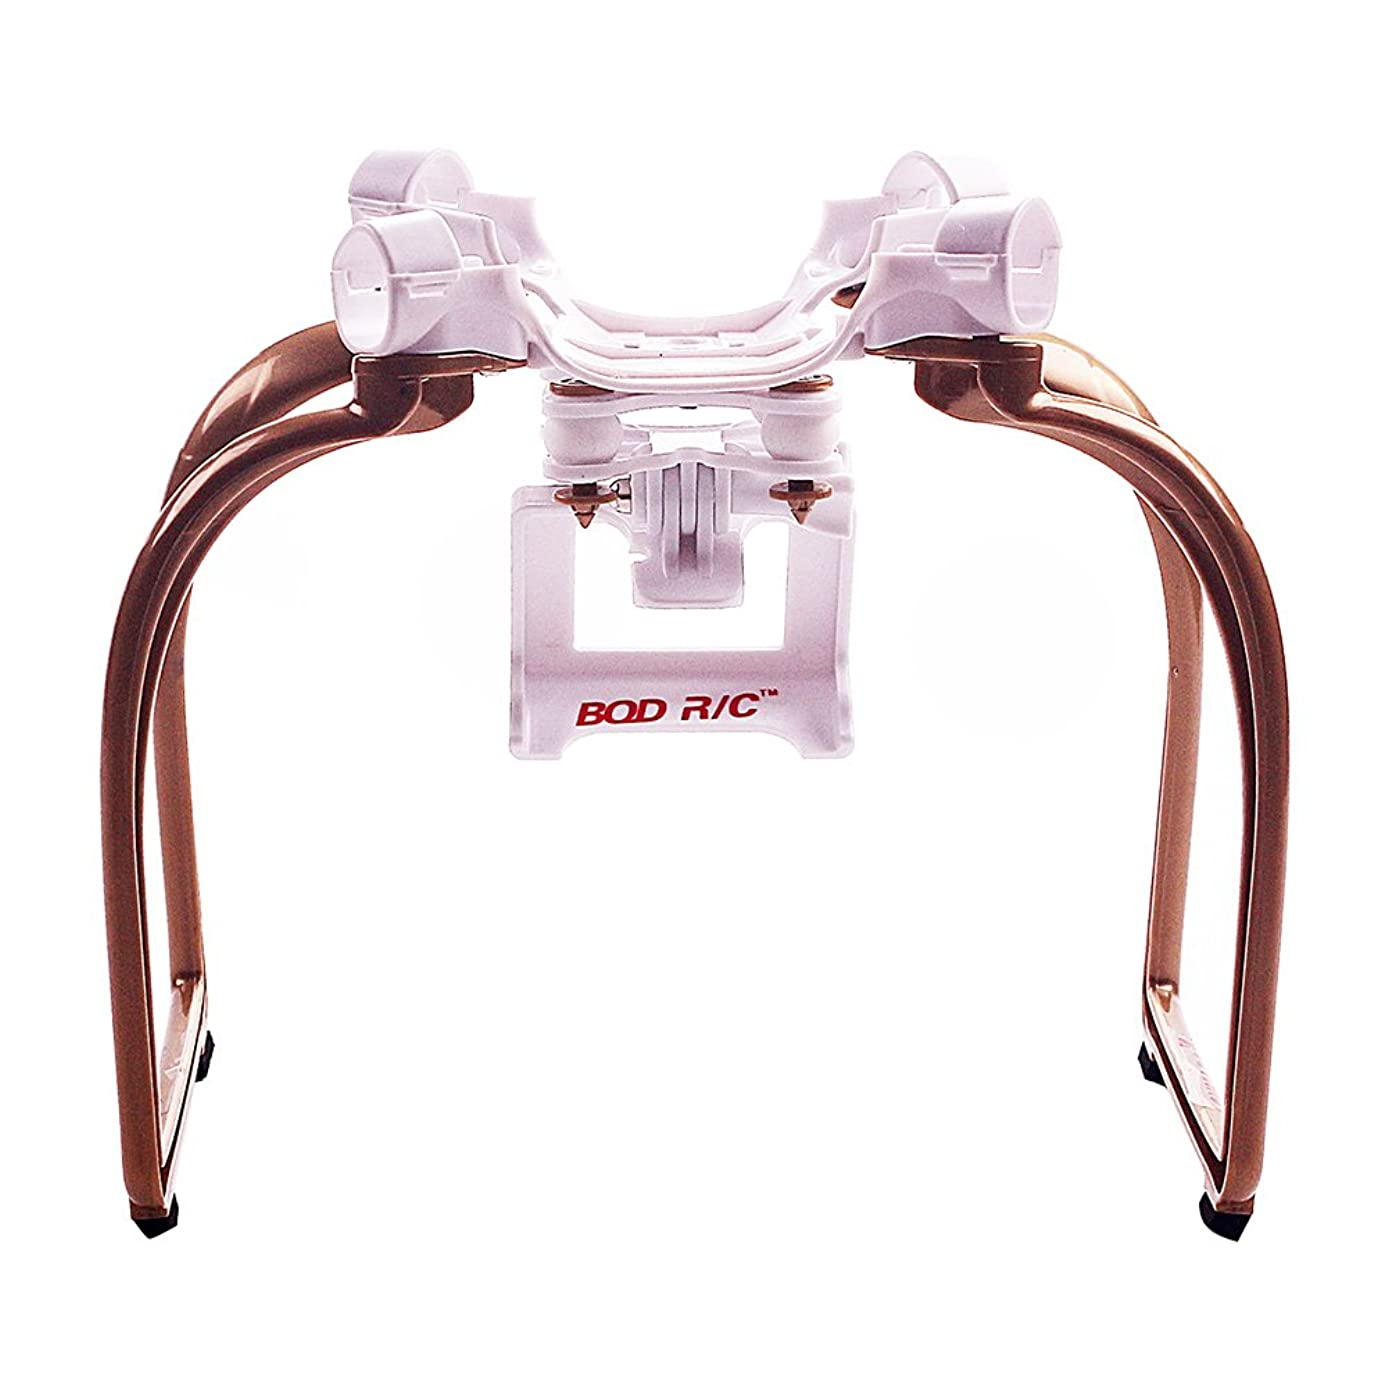 BTG Compatible with H501S Quadcopter-Upgrade Extended Landing Gear and Camera Holder with Gimbal Kit (Color: Golden)